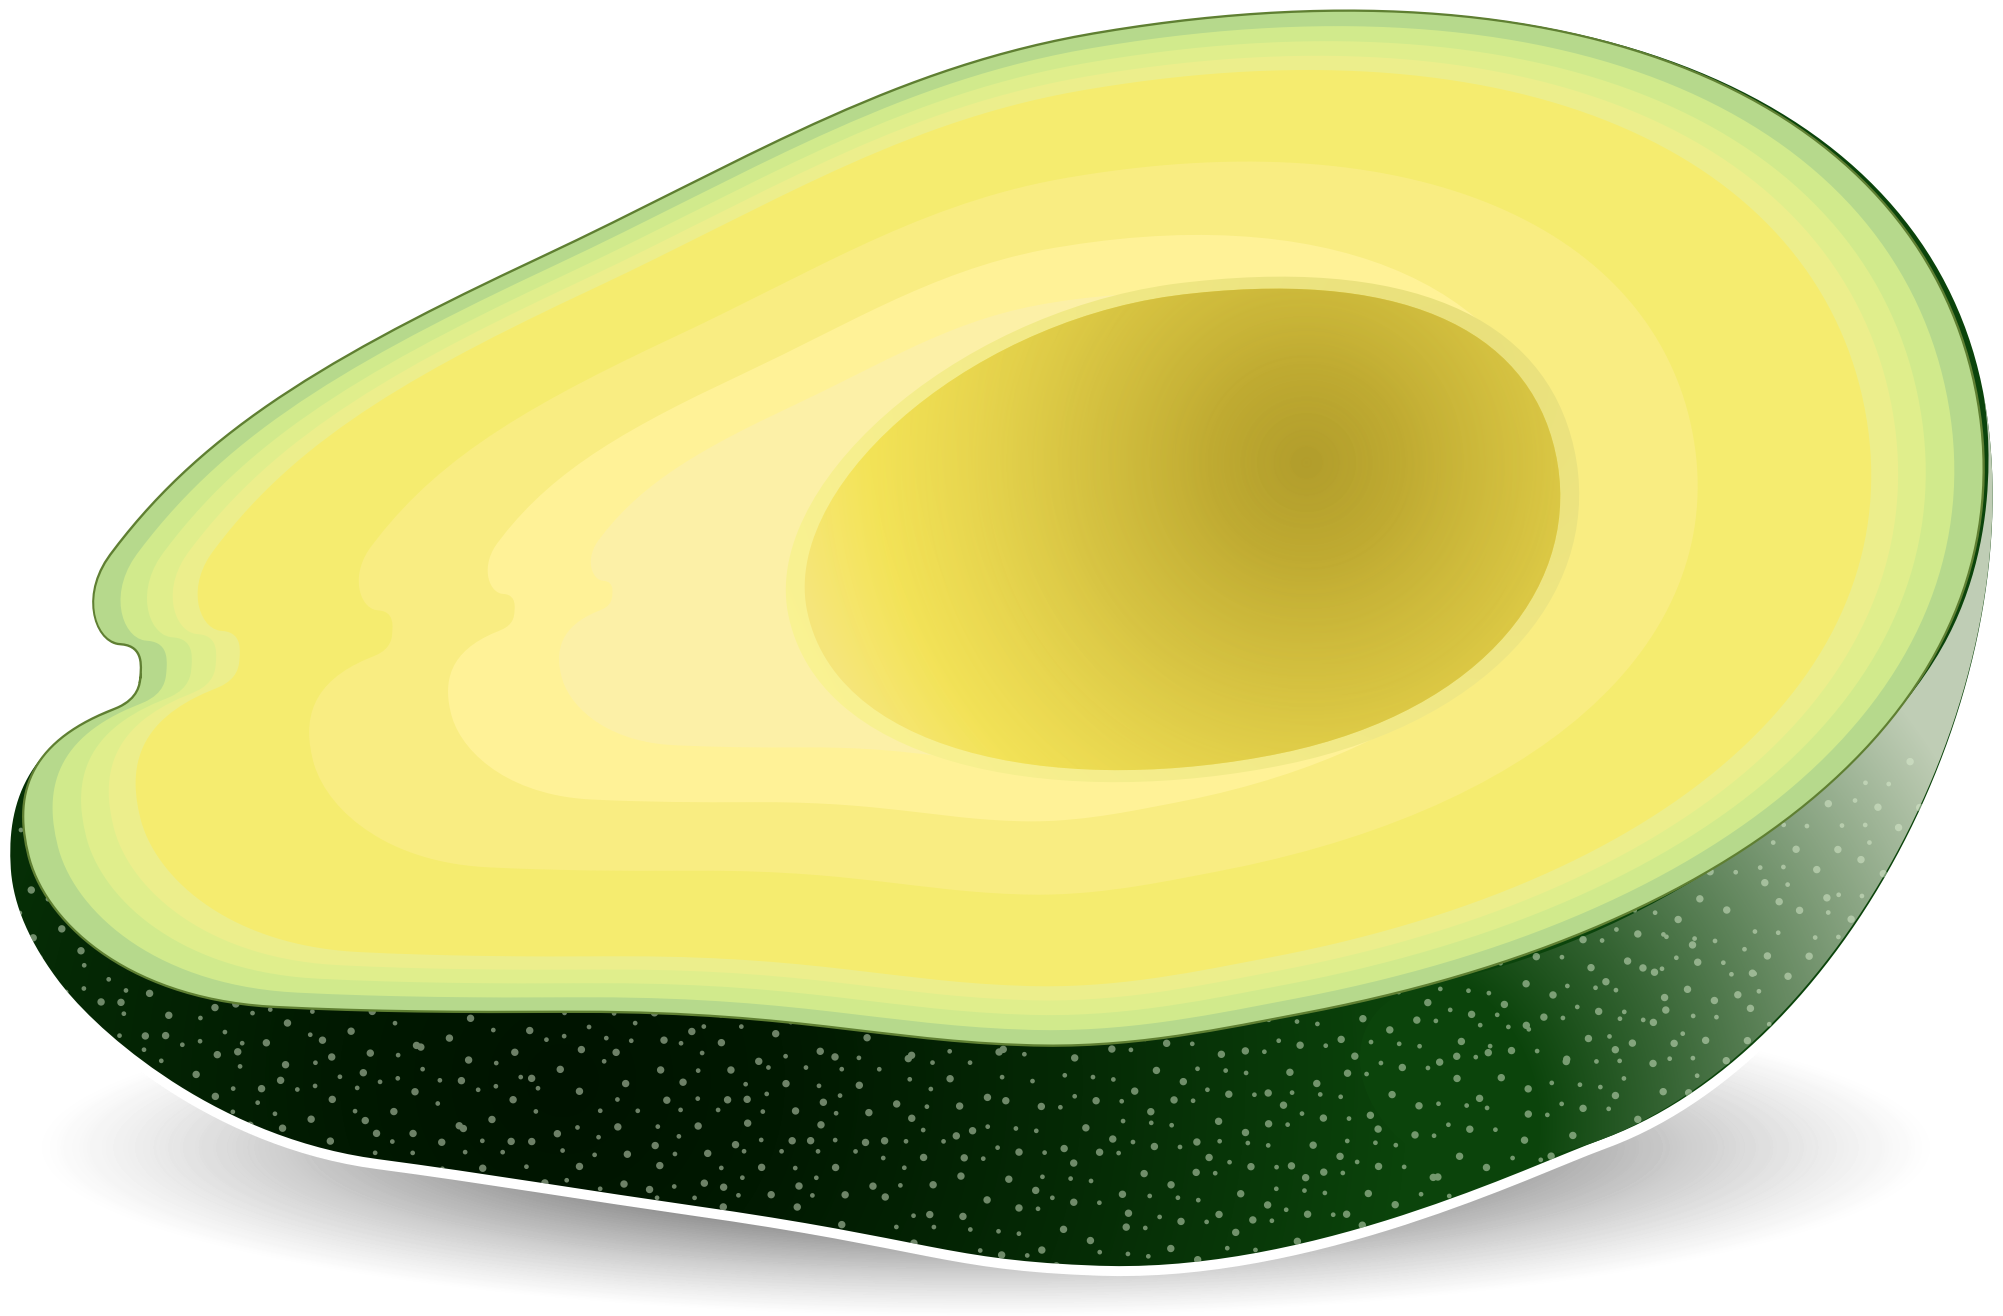 clipart royalty free stock Big image png. Avocado clipart.